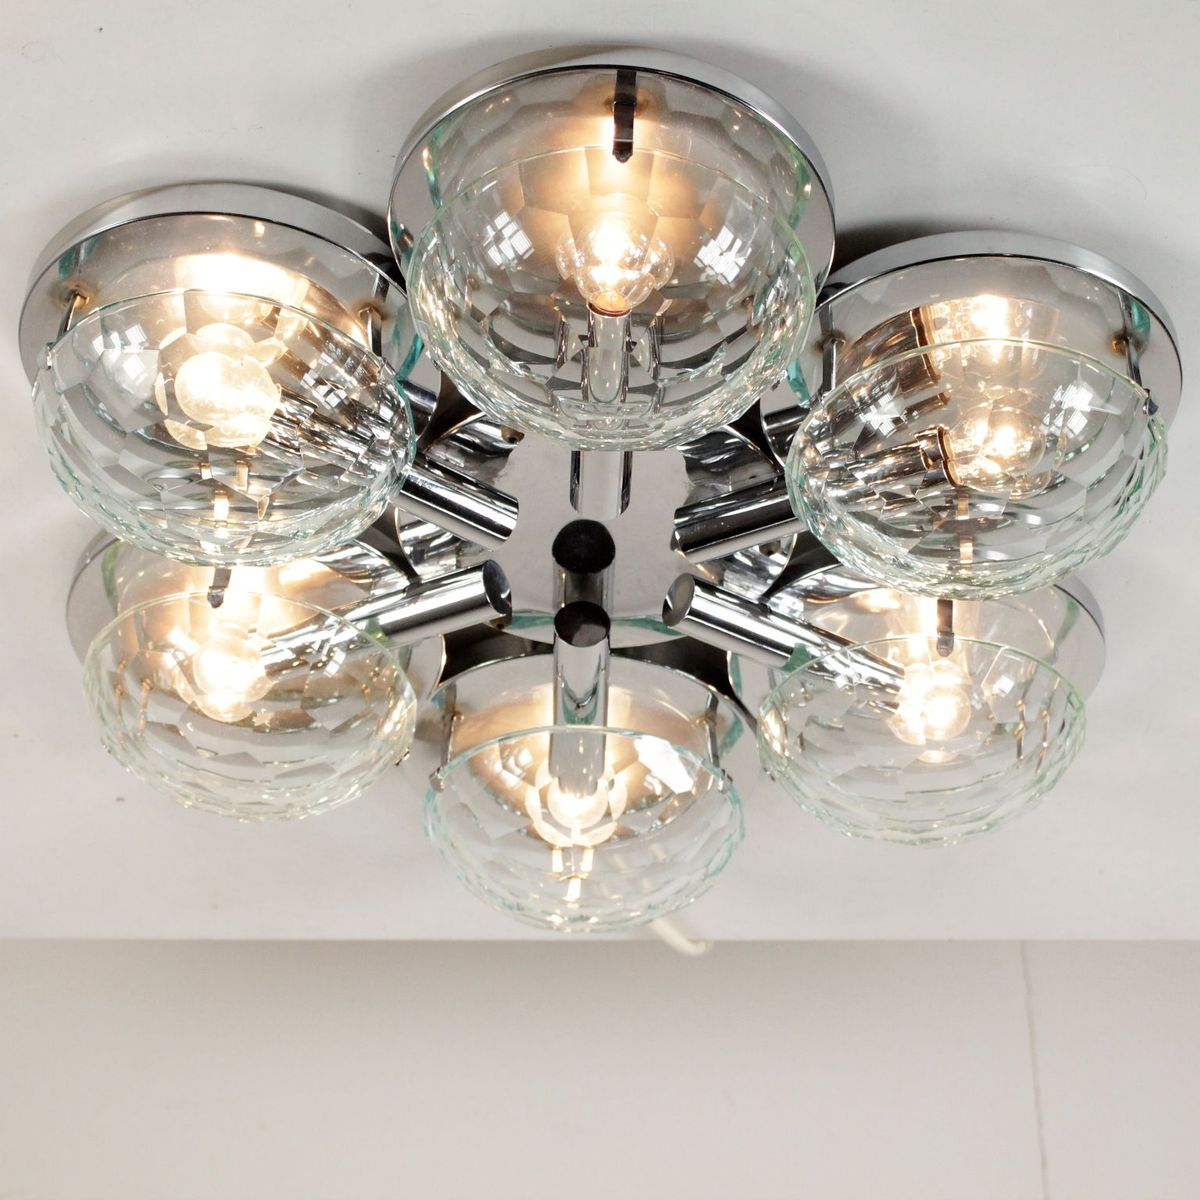 Pimlico Wall Lamp In Glass : Wall Lamp in Chromed Metal & Glass, 1960s for sale at Pamono